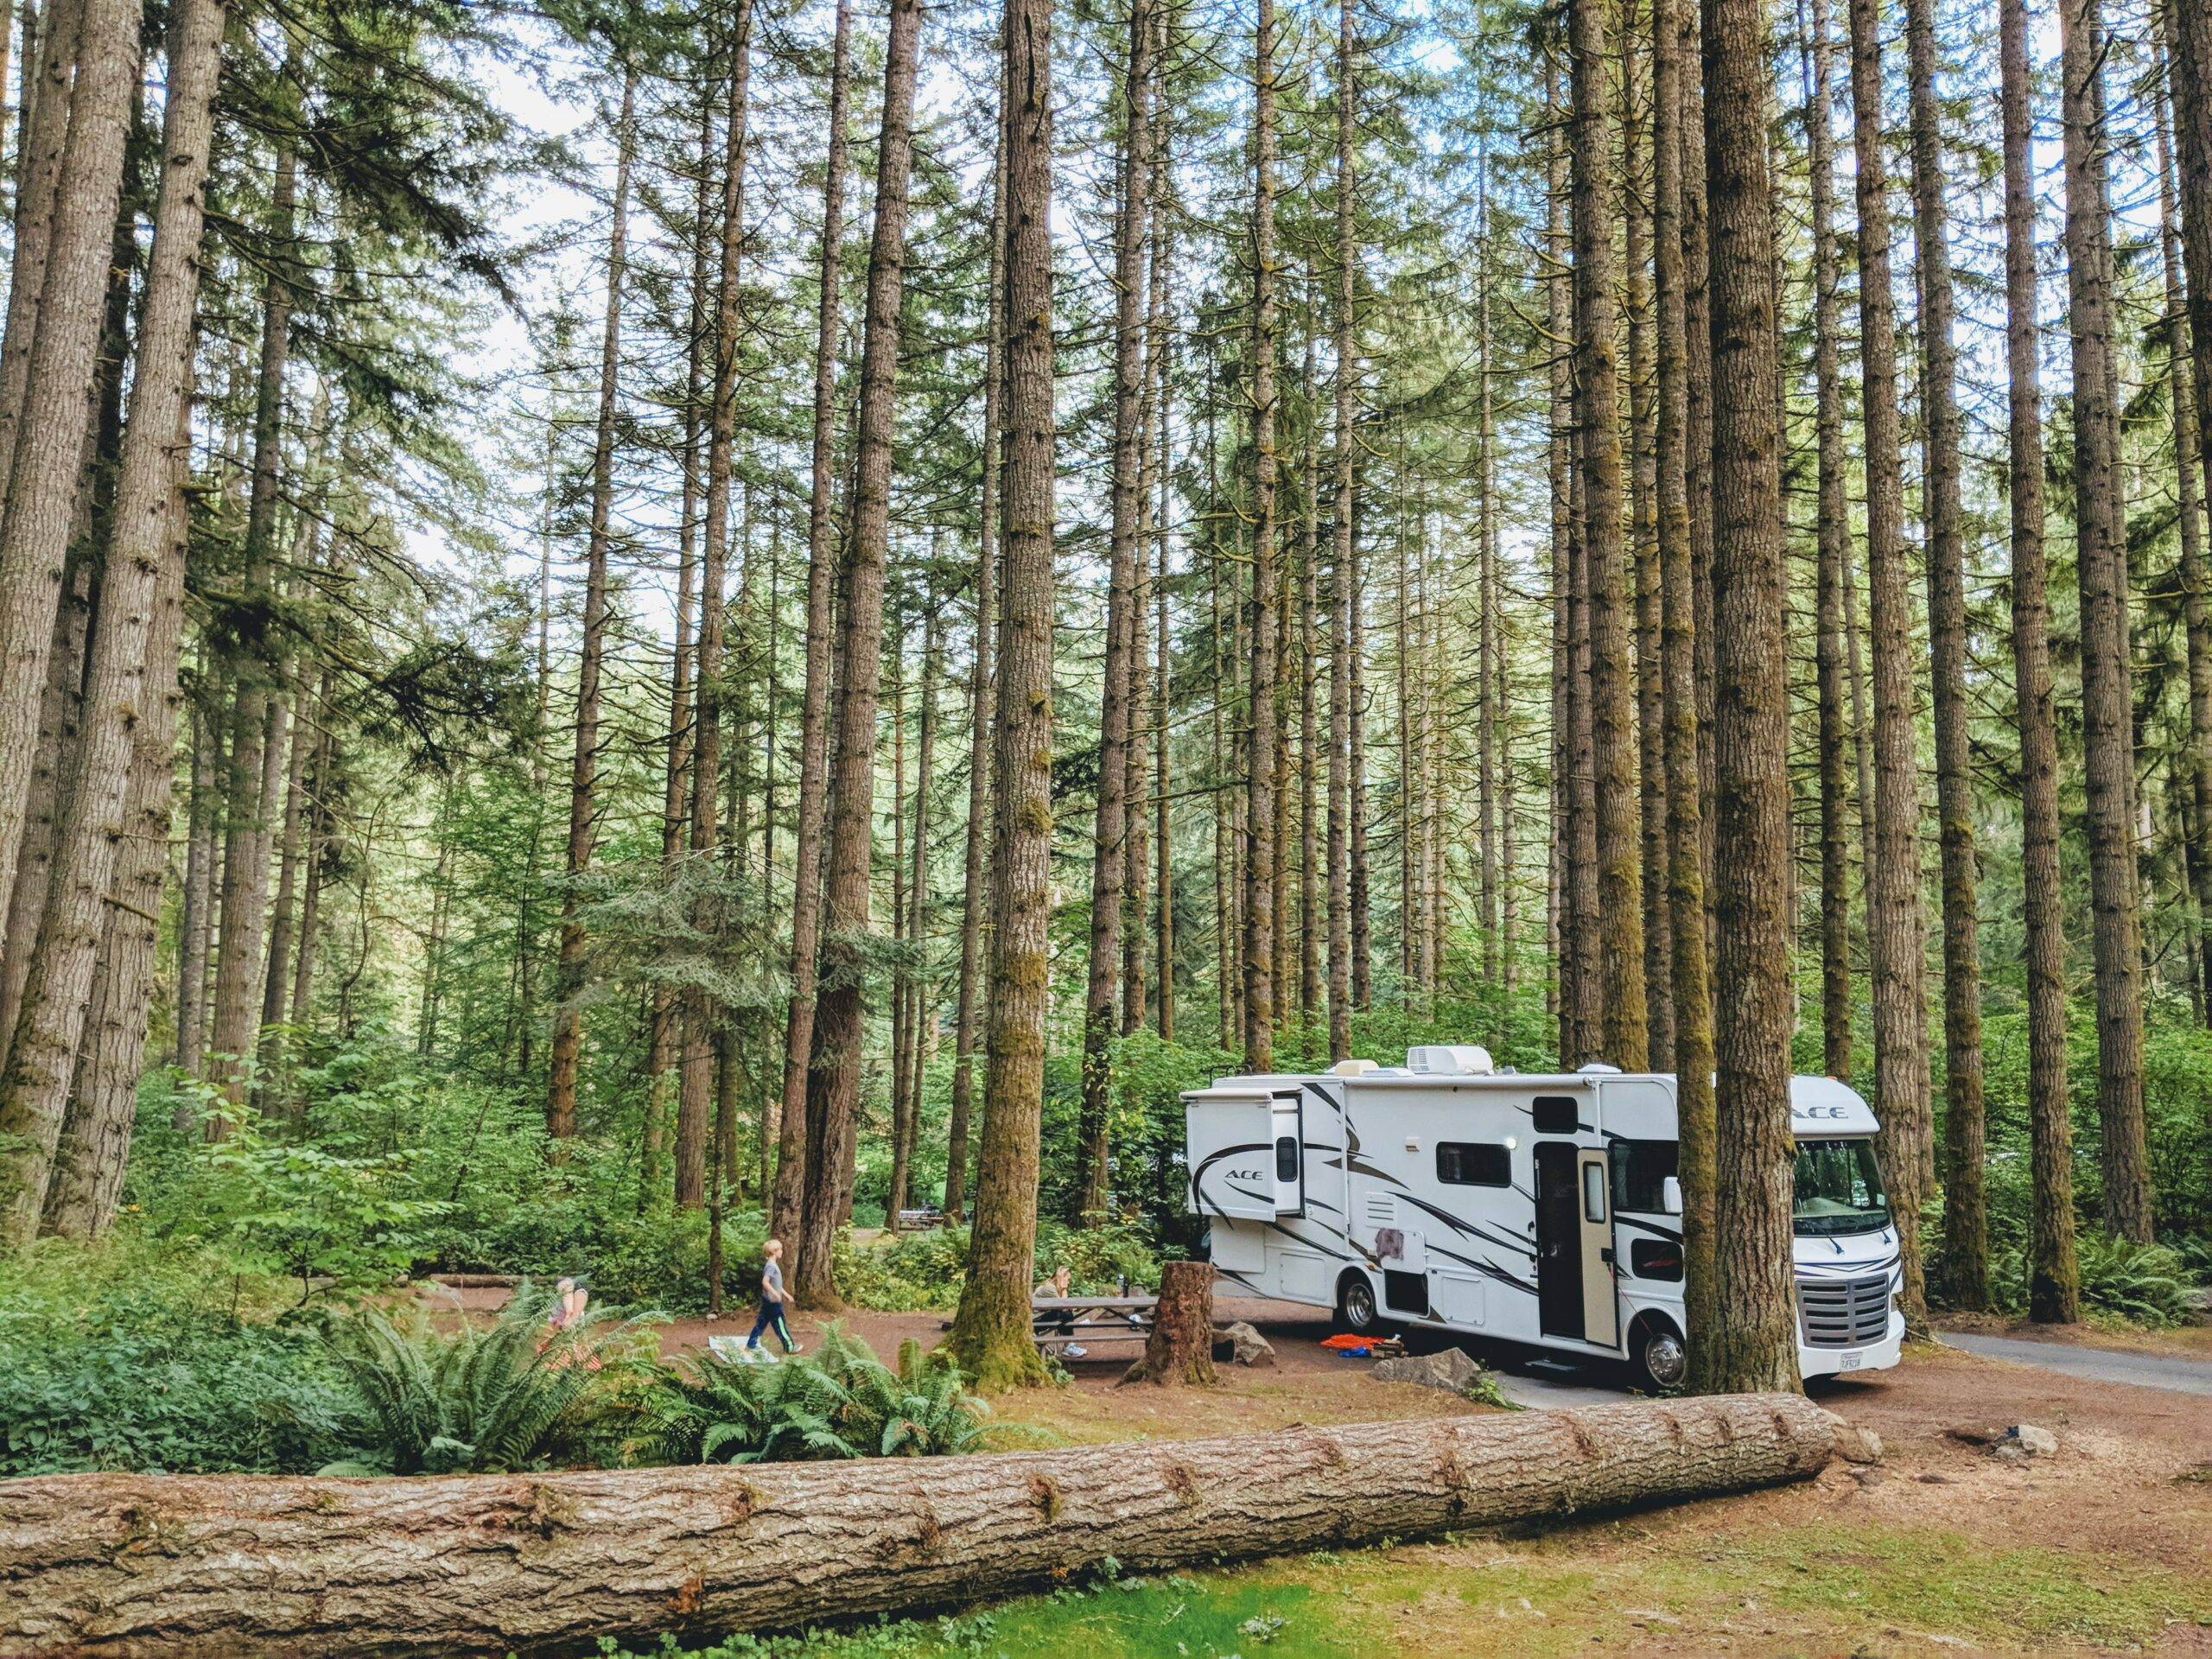 RV Among Tall Trees